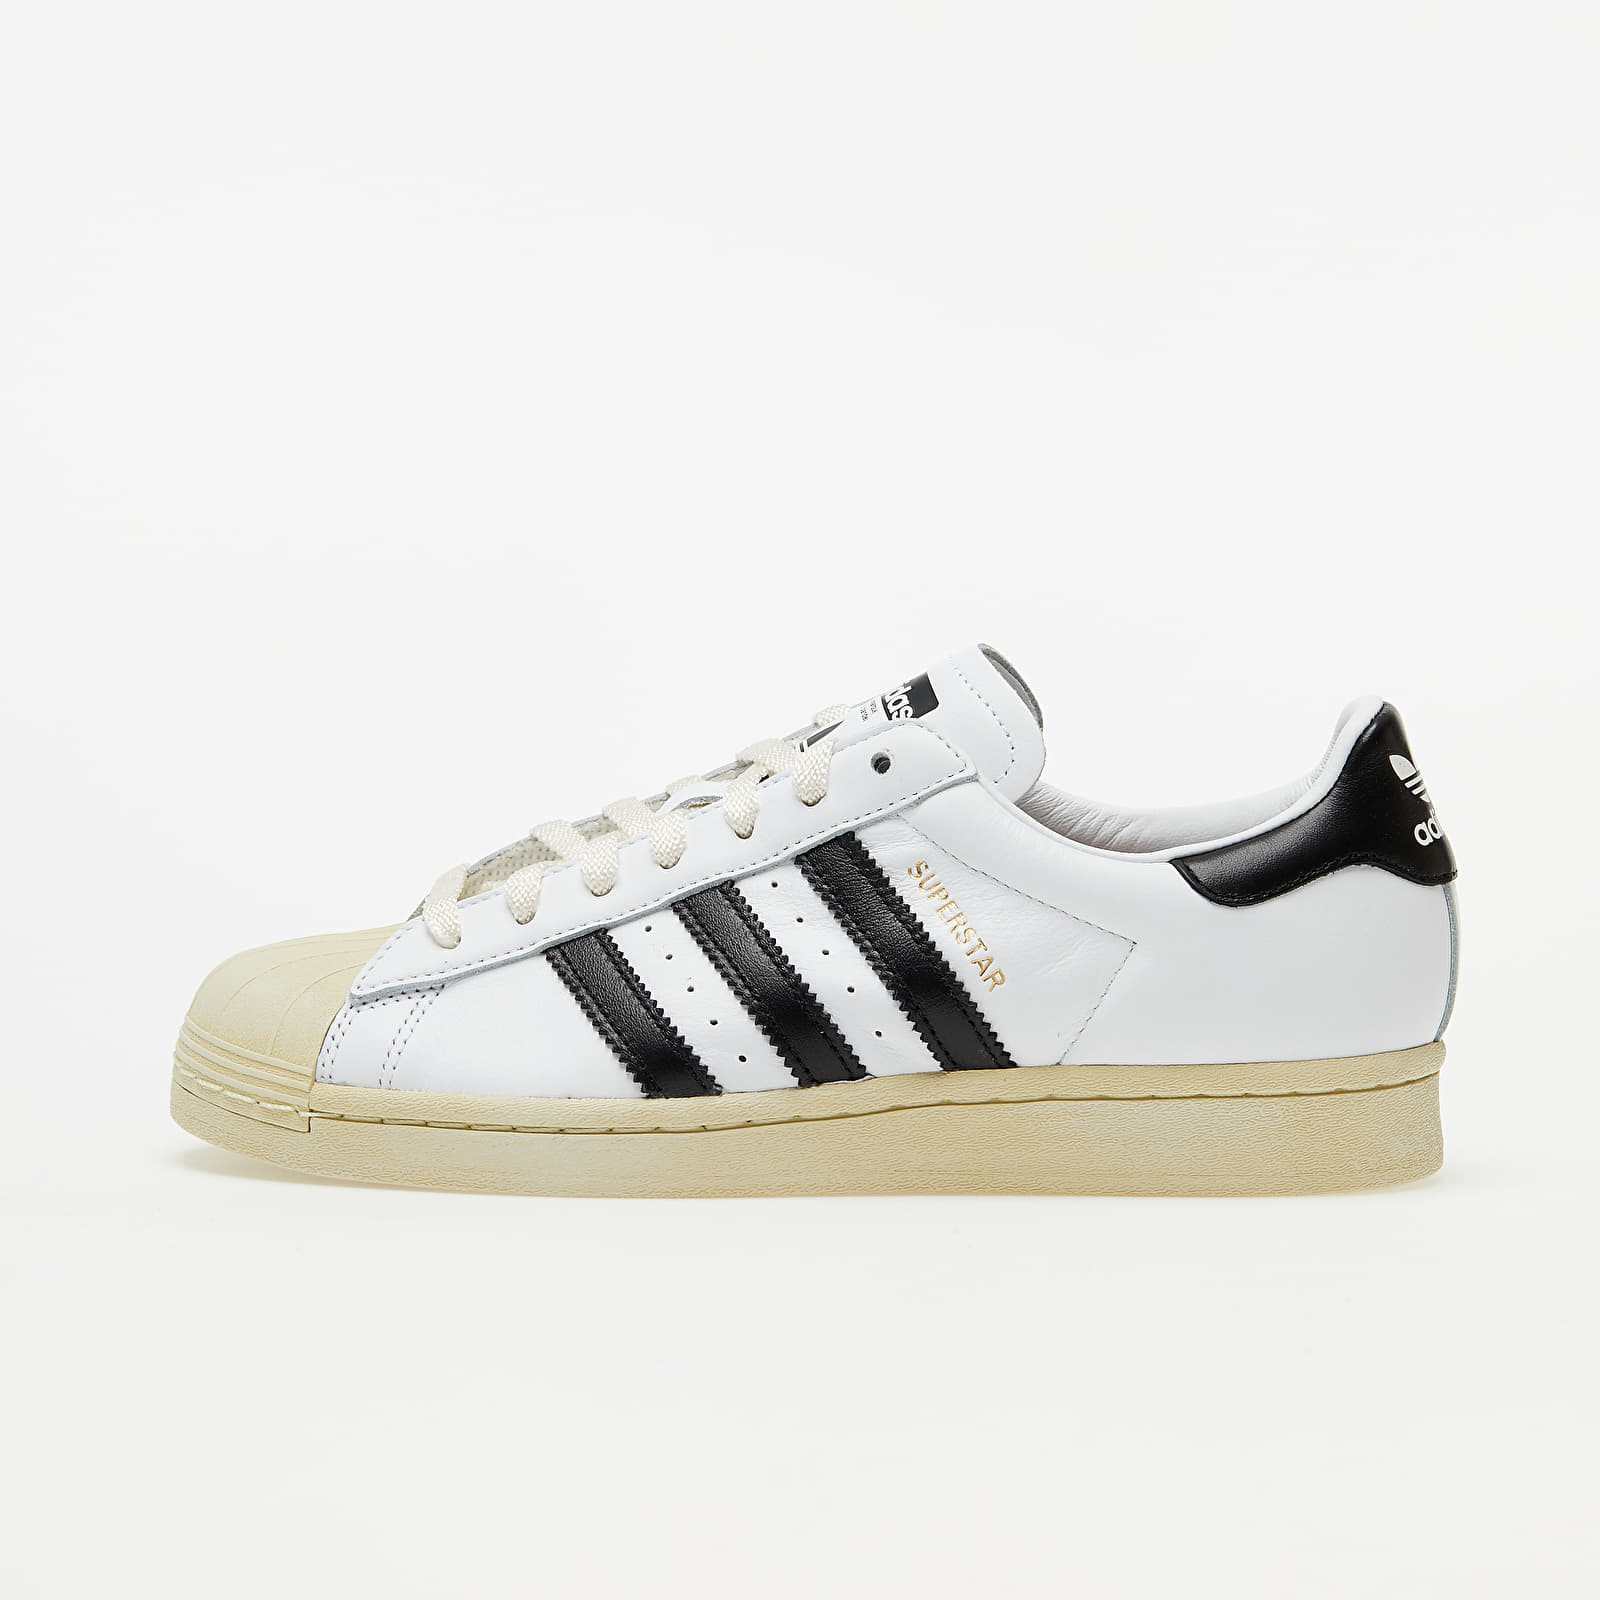 adidas Superstar Ftw White/ Core Black/ Blue EUR 38